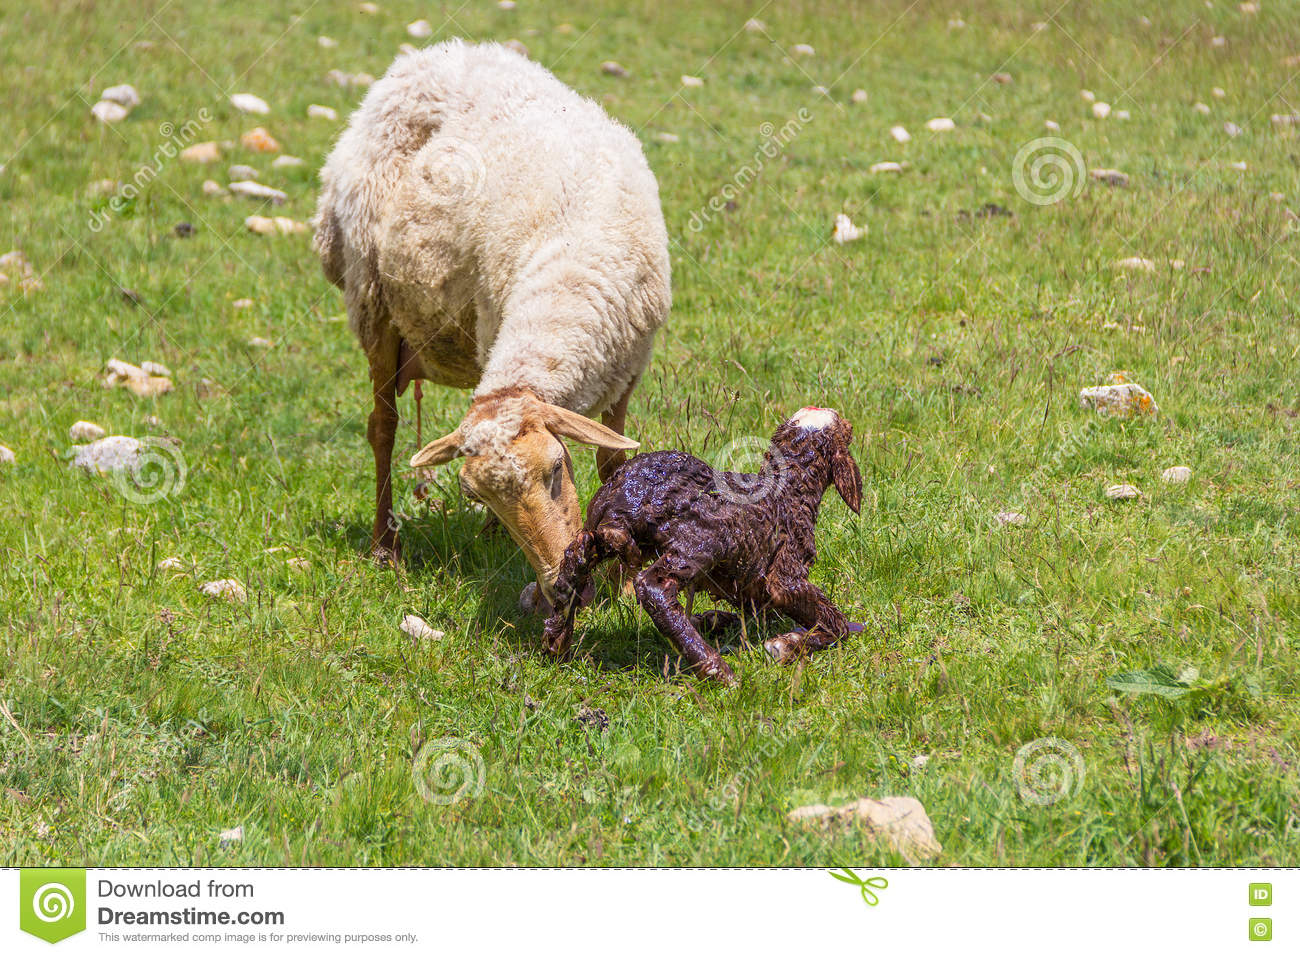 Ewe sheep with newborn lamb